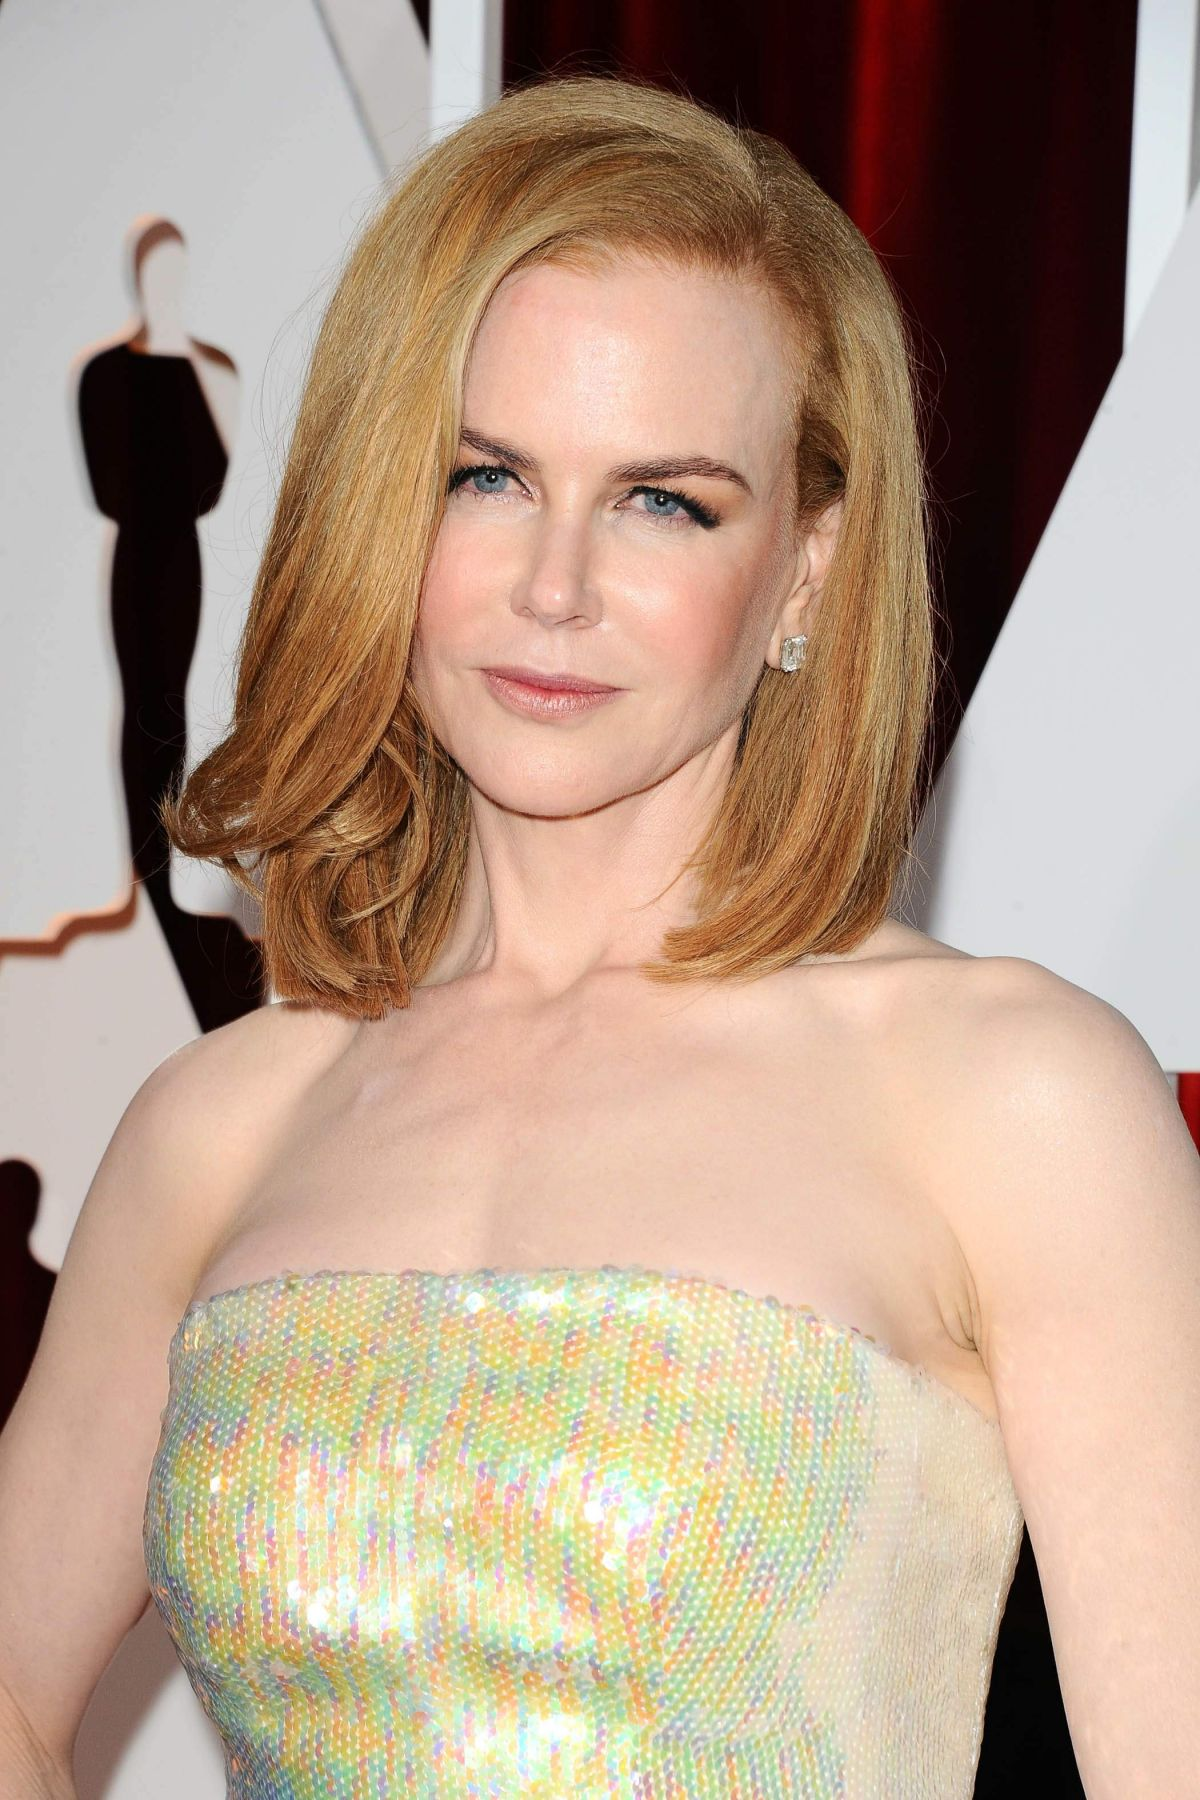 Image Result For Nicole Kidman